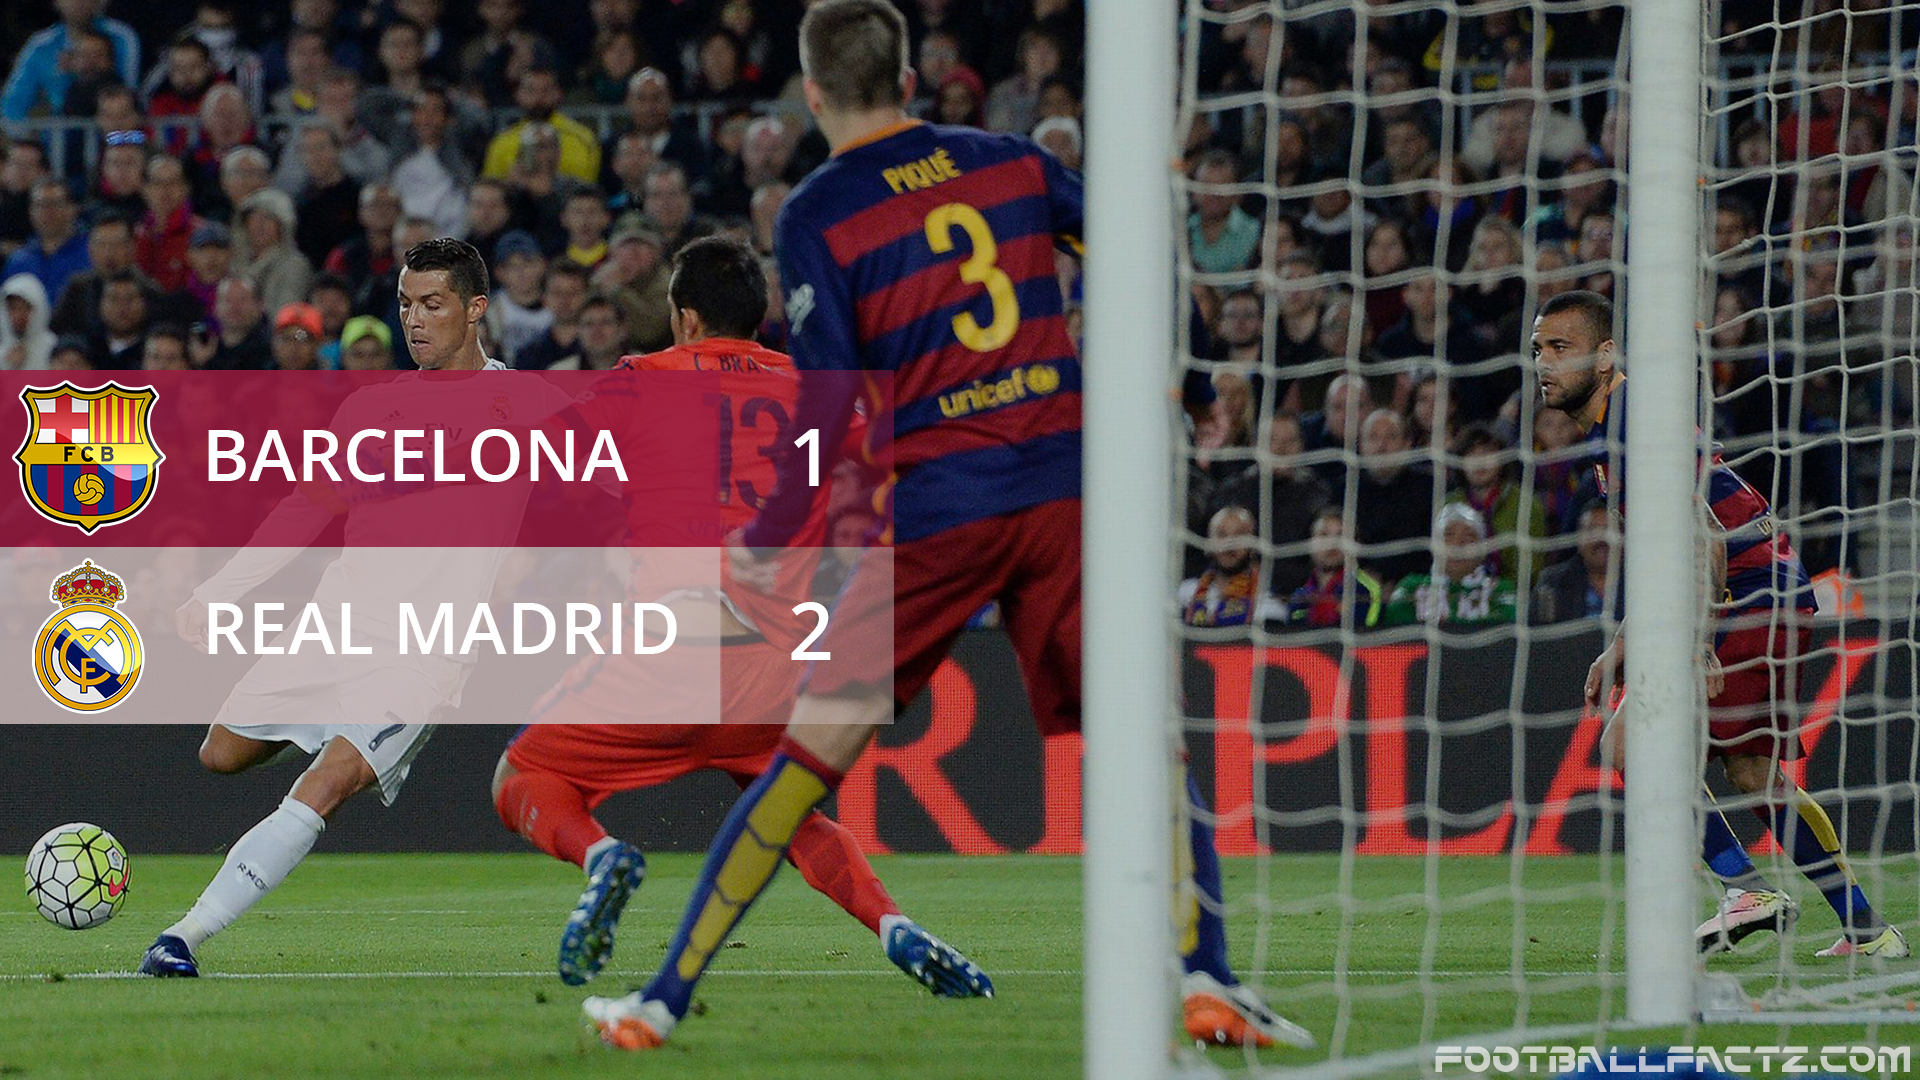 Barcelona 1 - 2 Real Madrid, La Liga